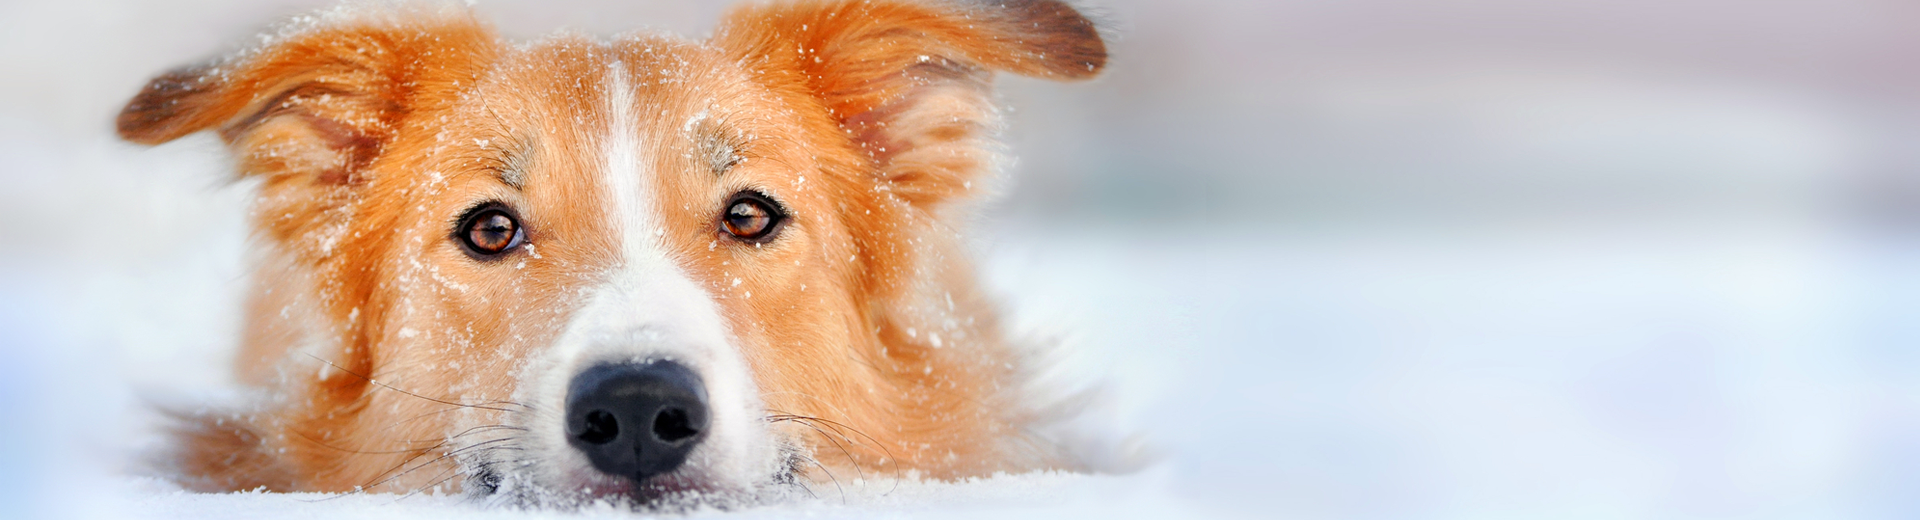 Pet Friendly Tips to be Holiday Ready